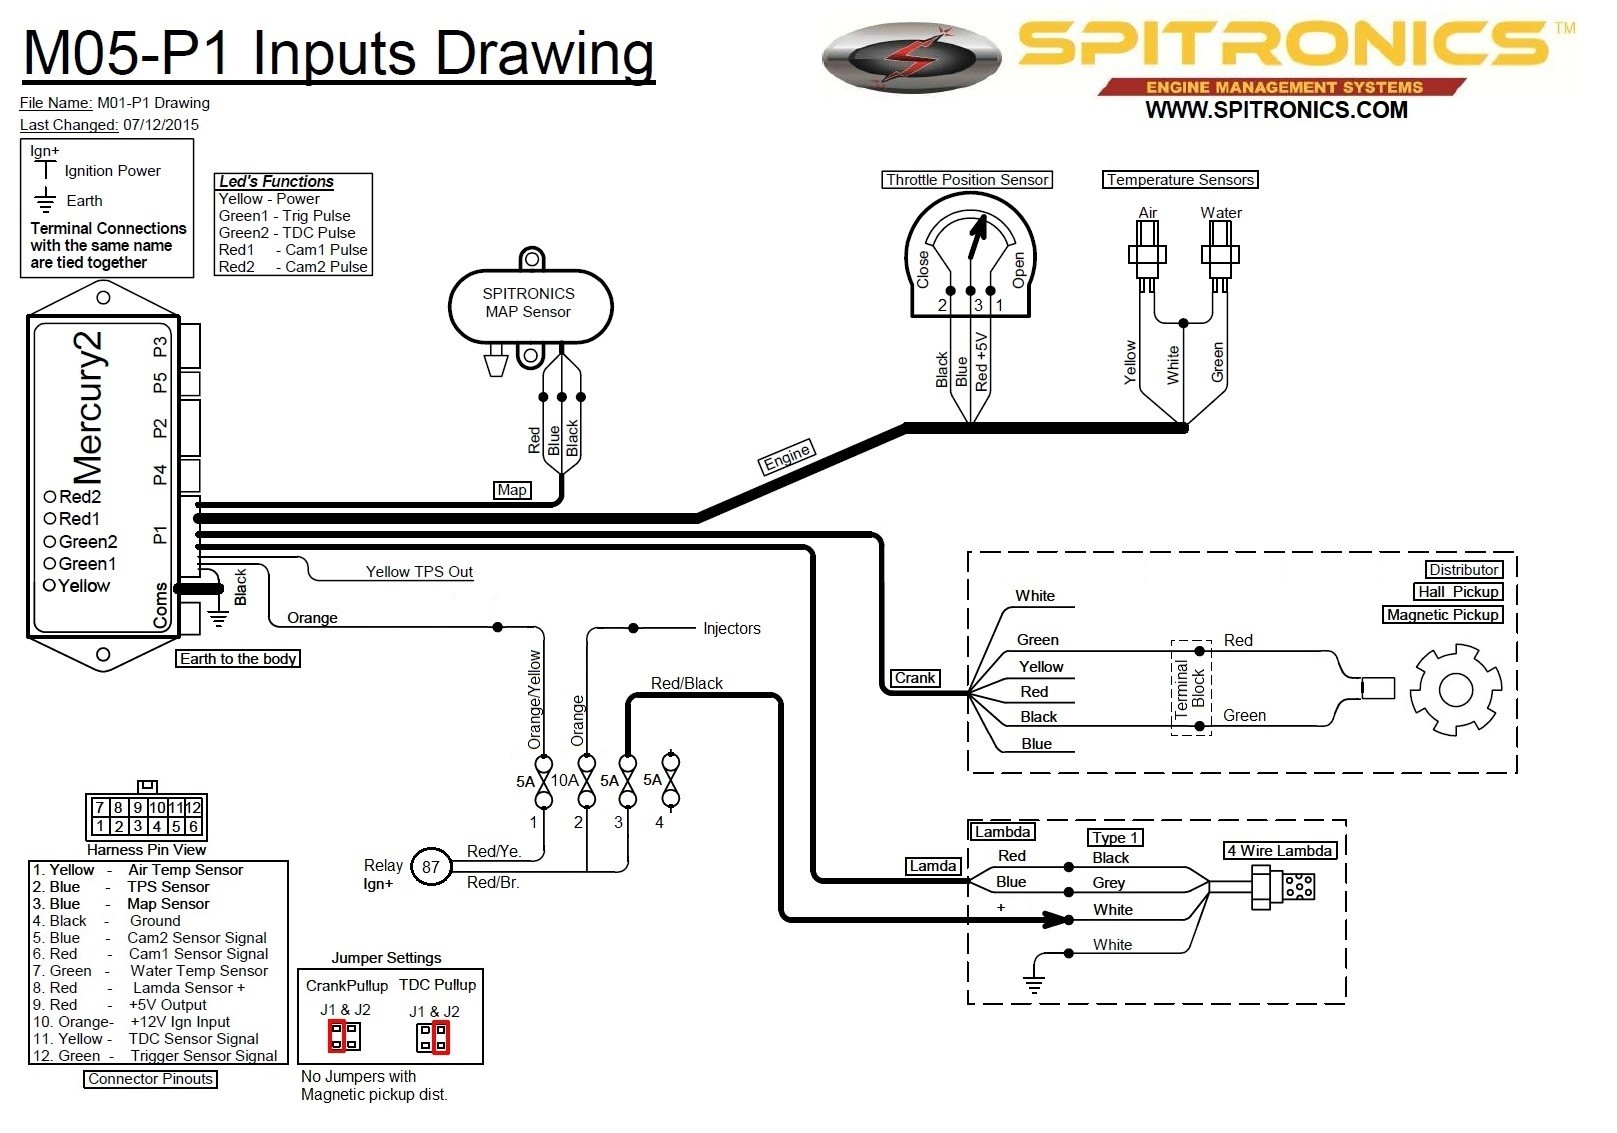 Saturn Spitronics Diagram Upgrading A 280z Efi to Spitronics Mercury 2 Ecu Page 2 Fuel Injection the Classic Zcar Club Of Saturn Spitronics Diagram